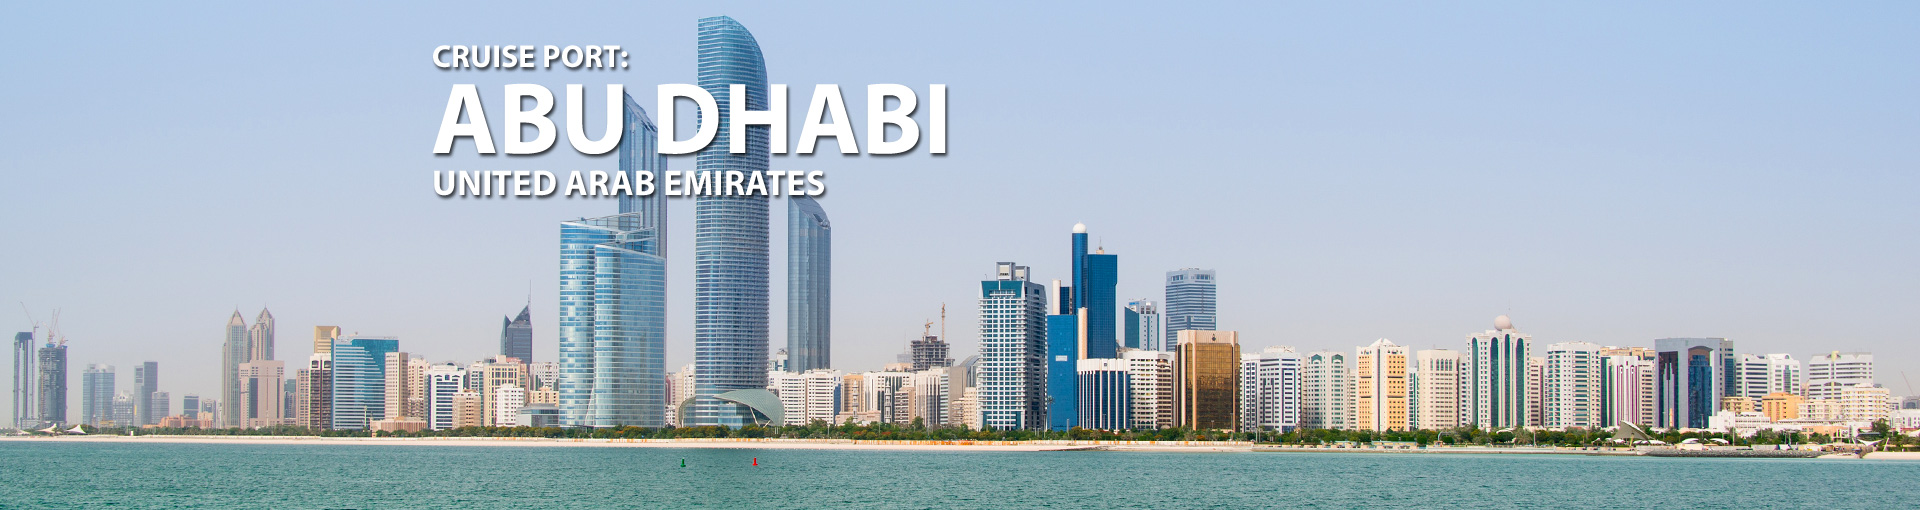 Cruise Port:Abu Dhabi United Arab Emirates